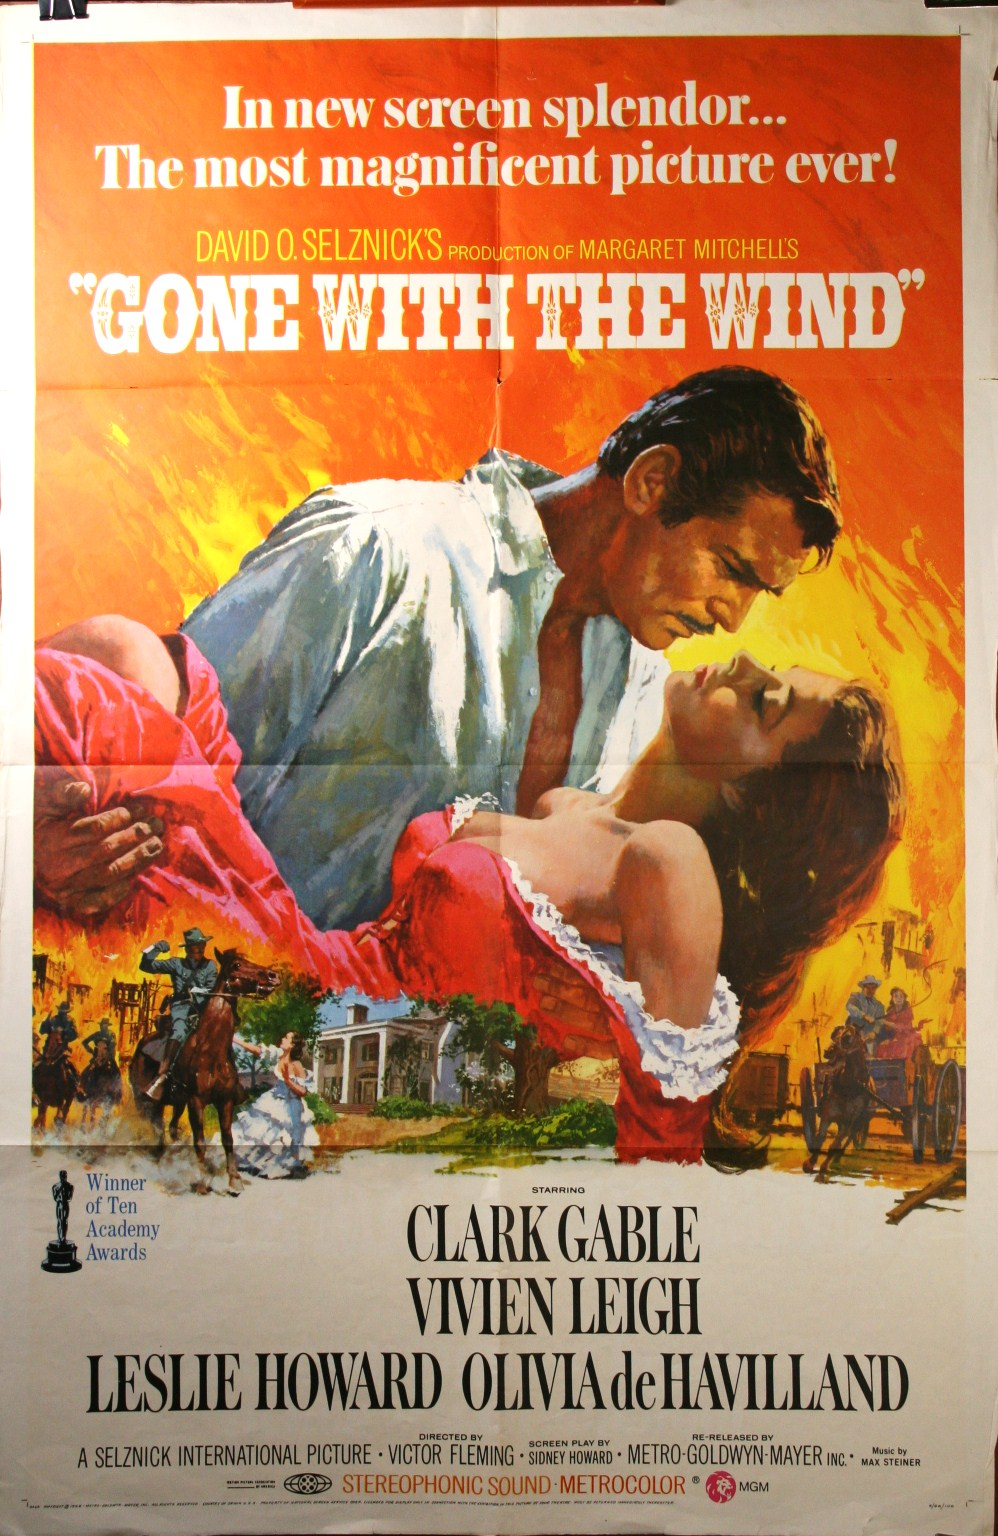 GONE WITH THE WIND, Original Film Poster